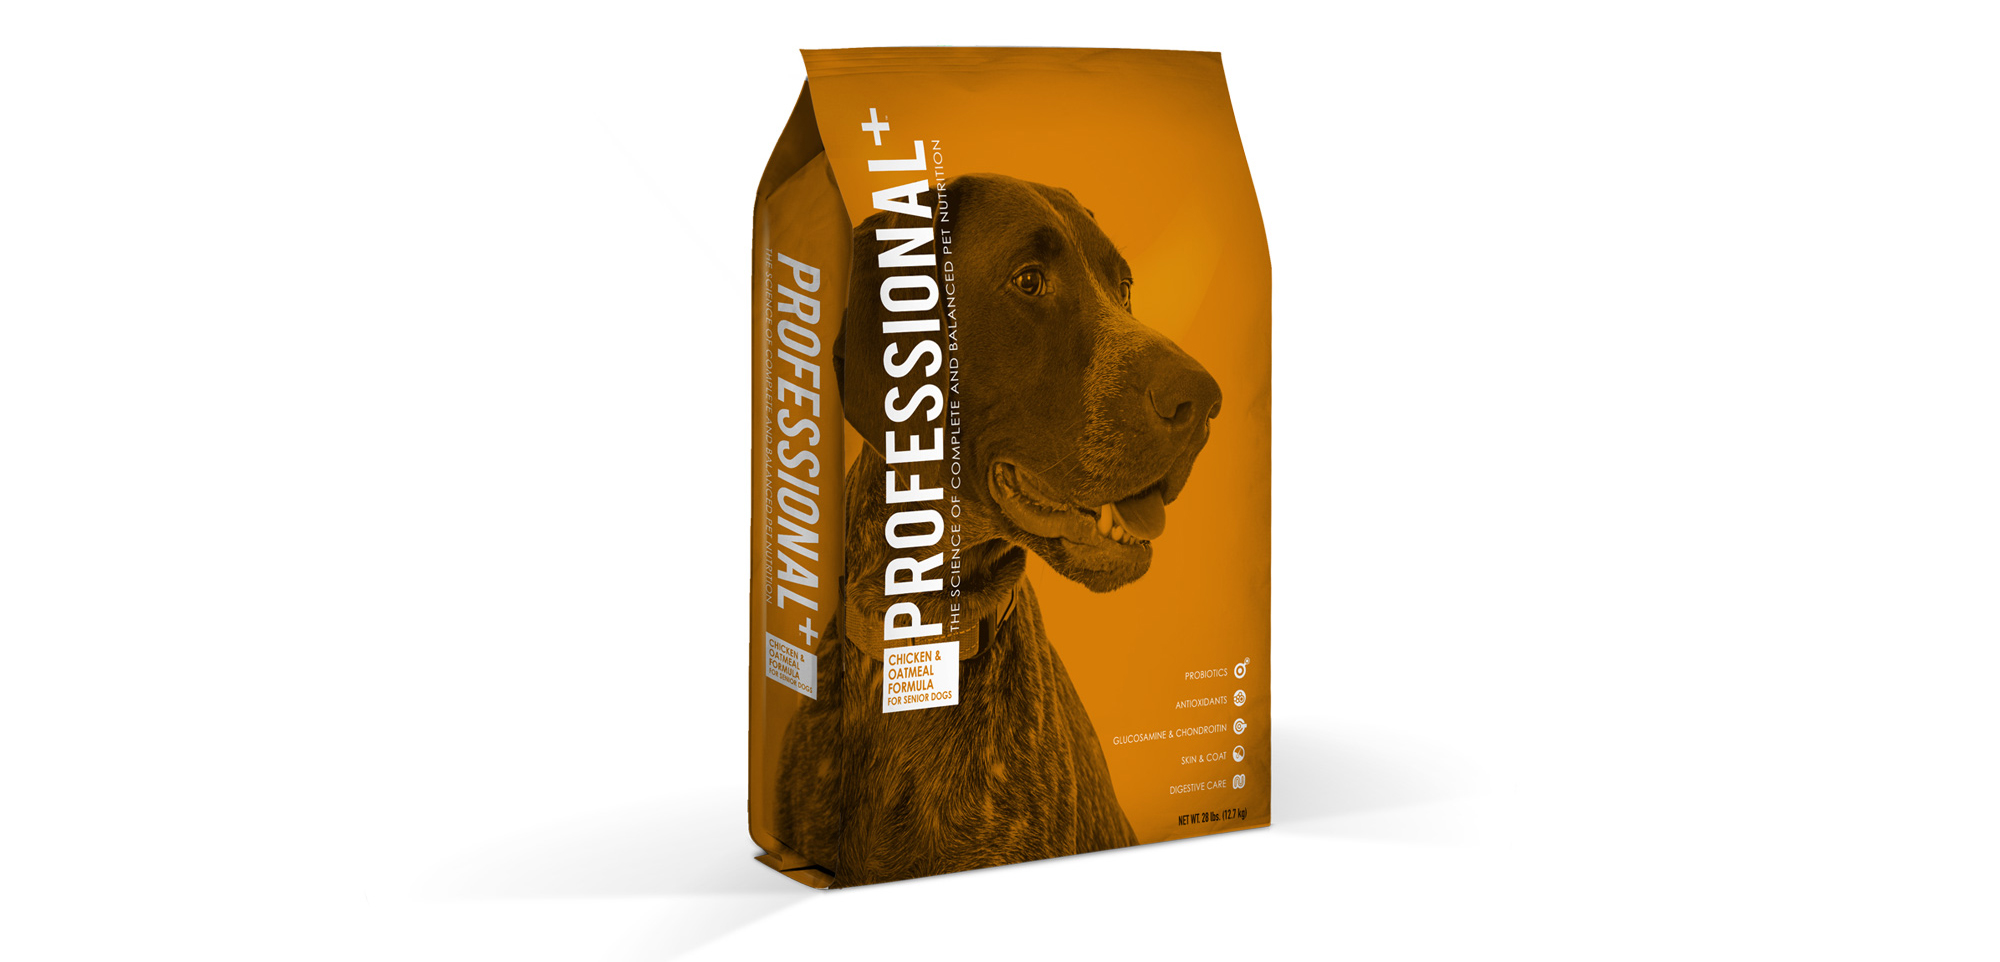 Professional+ Chicken and Oatmeal Formula for Senior Dogs